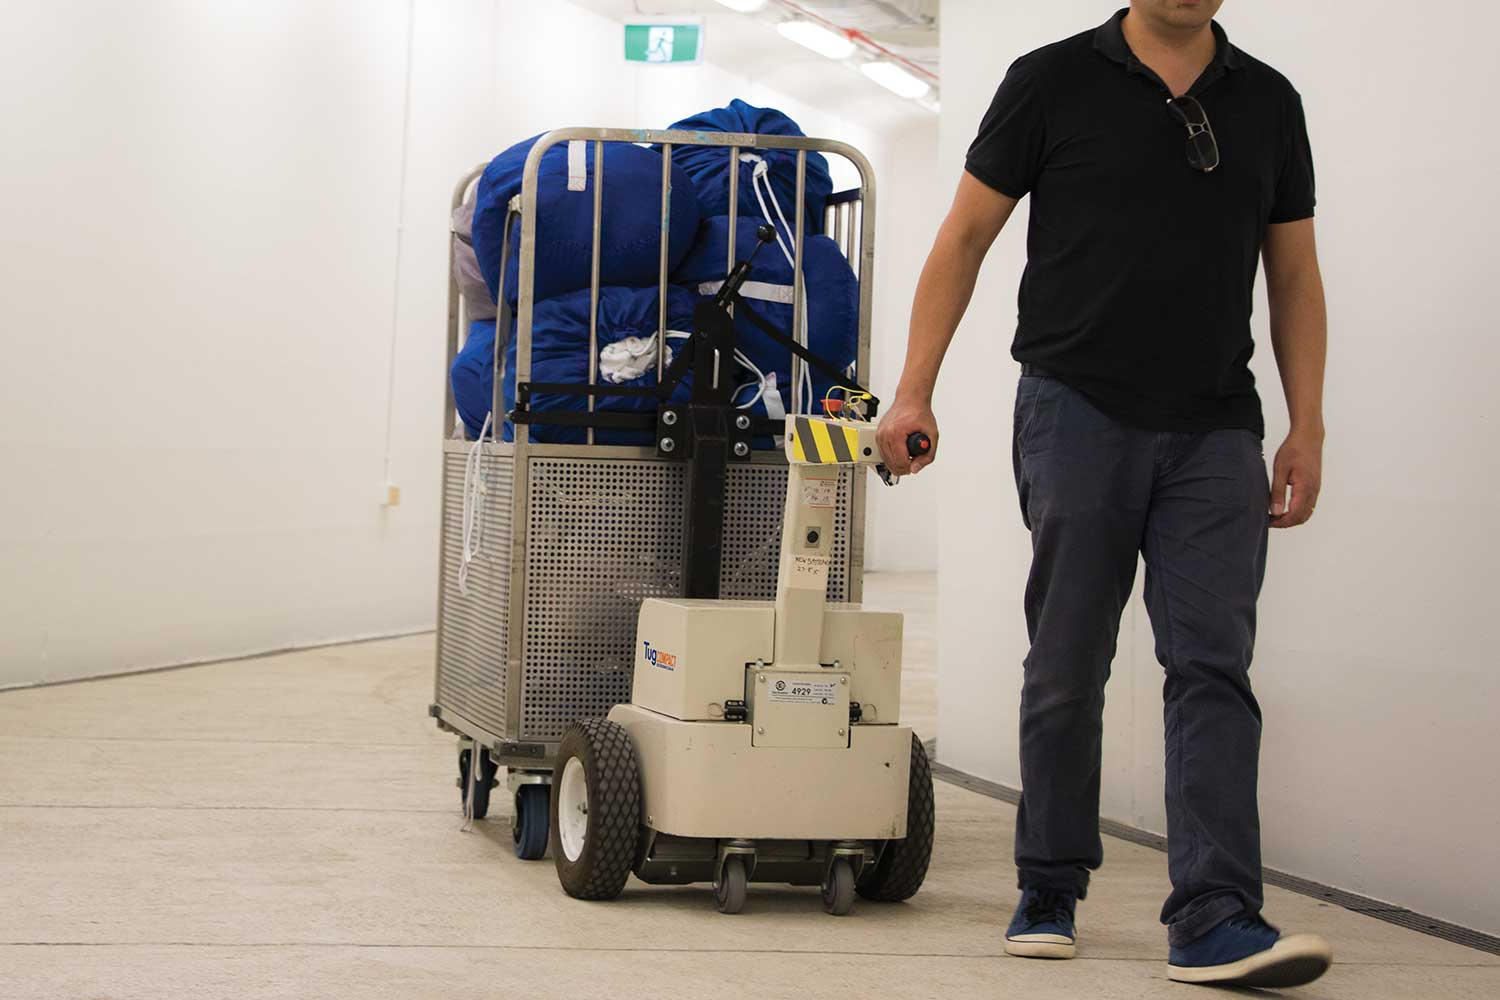 Electrodrive's Tug Compact towing linen trolleys in a hospital